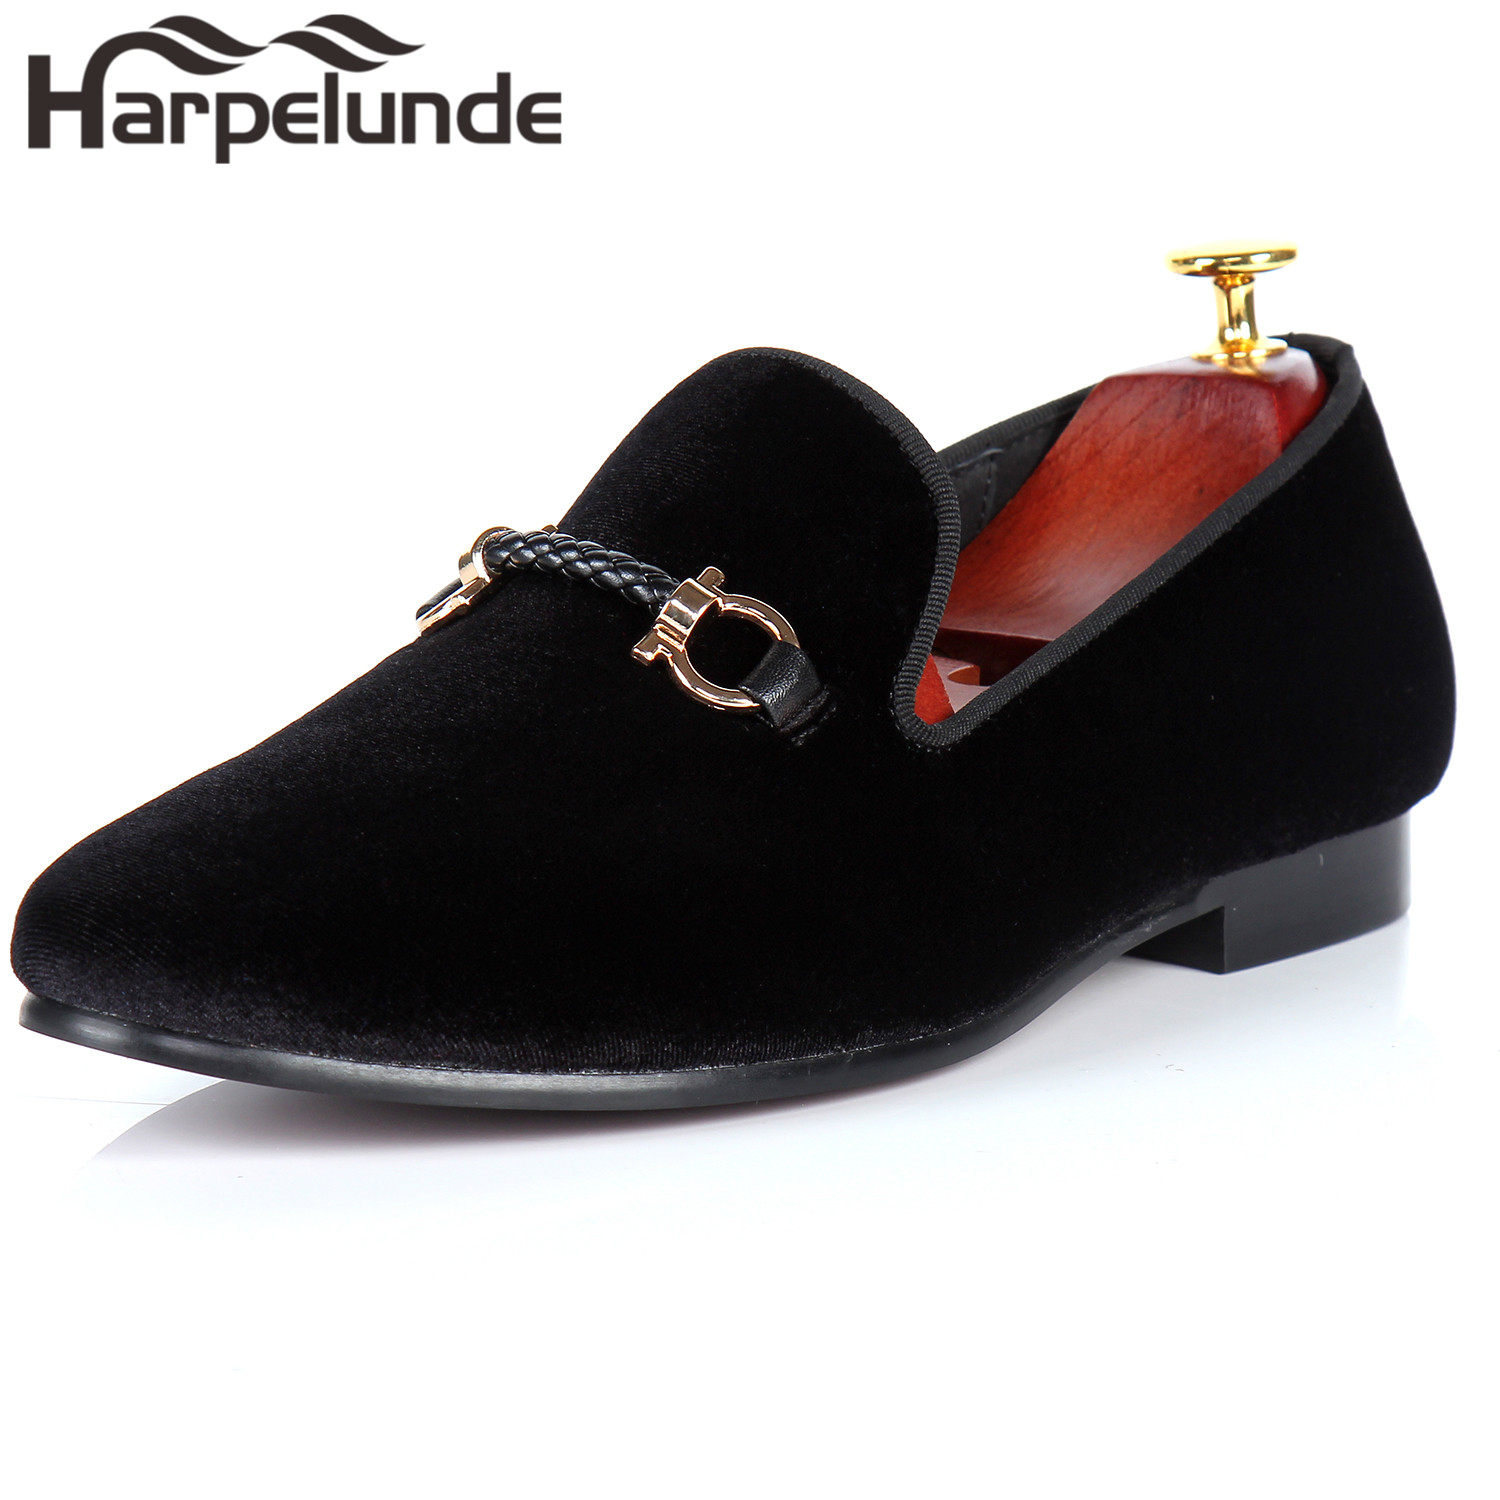 Harpelunde Buckle Men Dress Shoes Black Velvet Loafers Fashion Footwear Size 6-14 harpelunde animal buckle men dress loafers printed velvet flat shoes with copper cap toe size 6 to 14